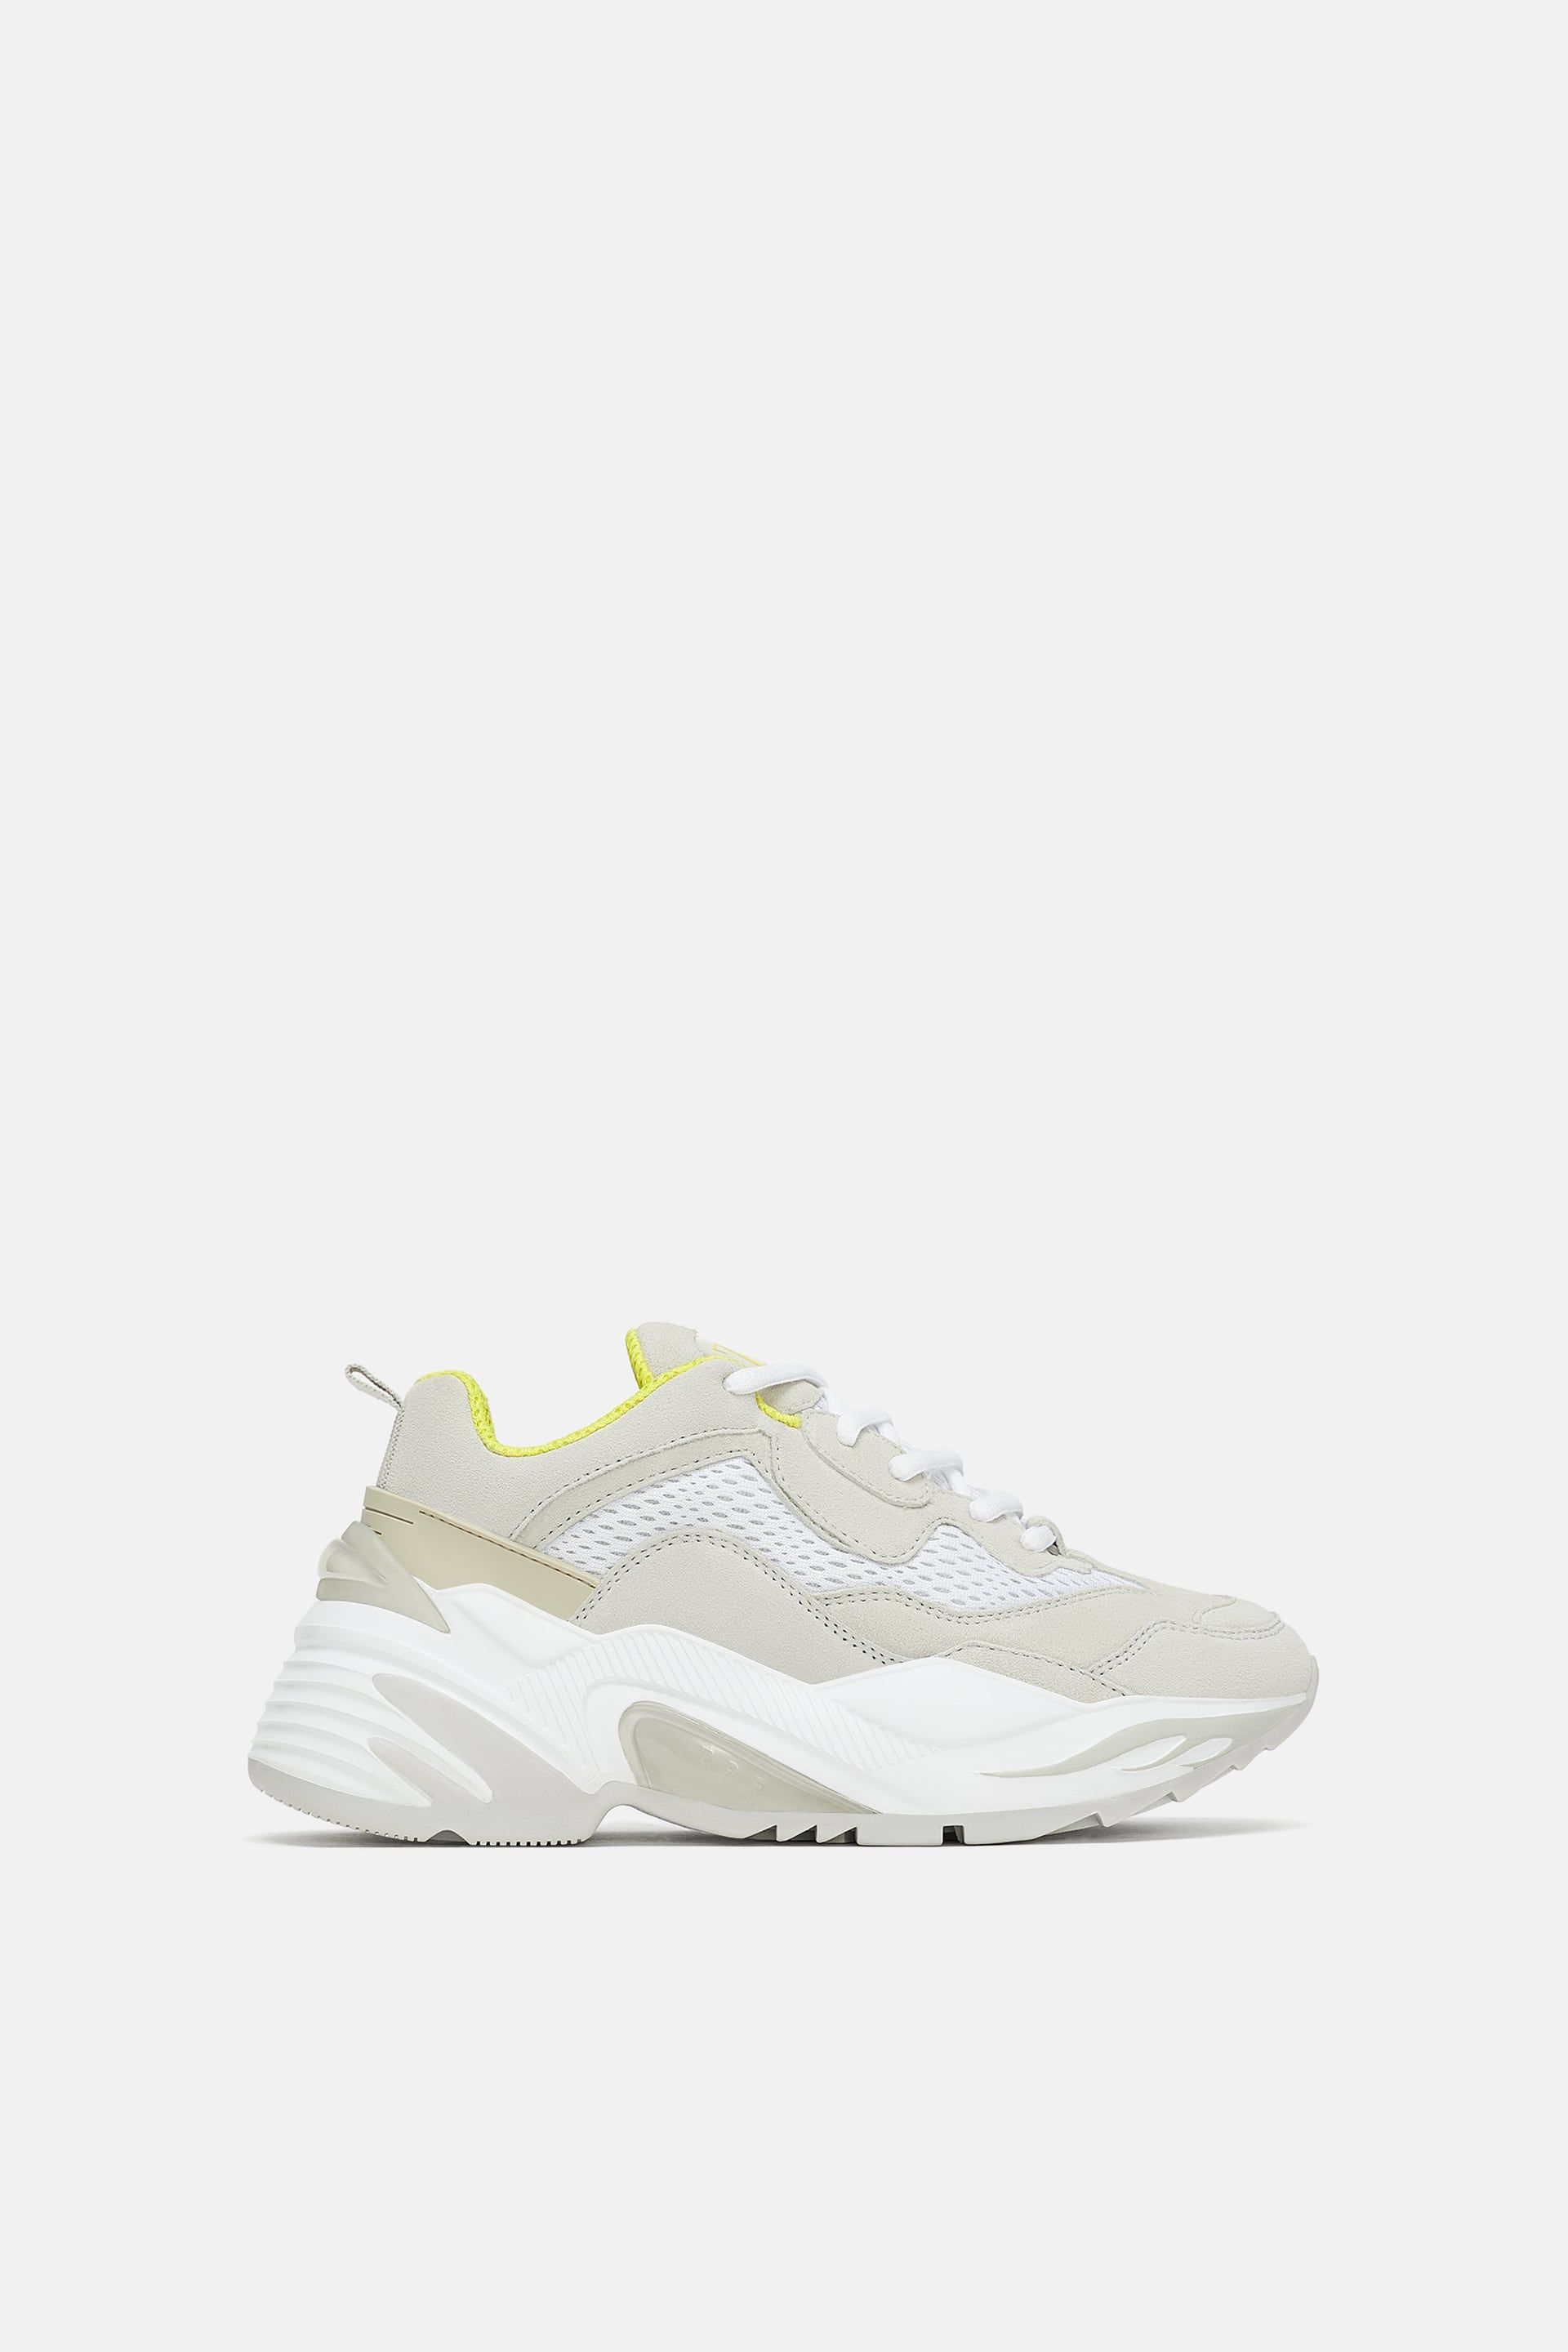 f535e76da6 Thick soled sneakers in 2019 | shoesies | Sneakers, Shoes, Sneakers nike